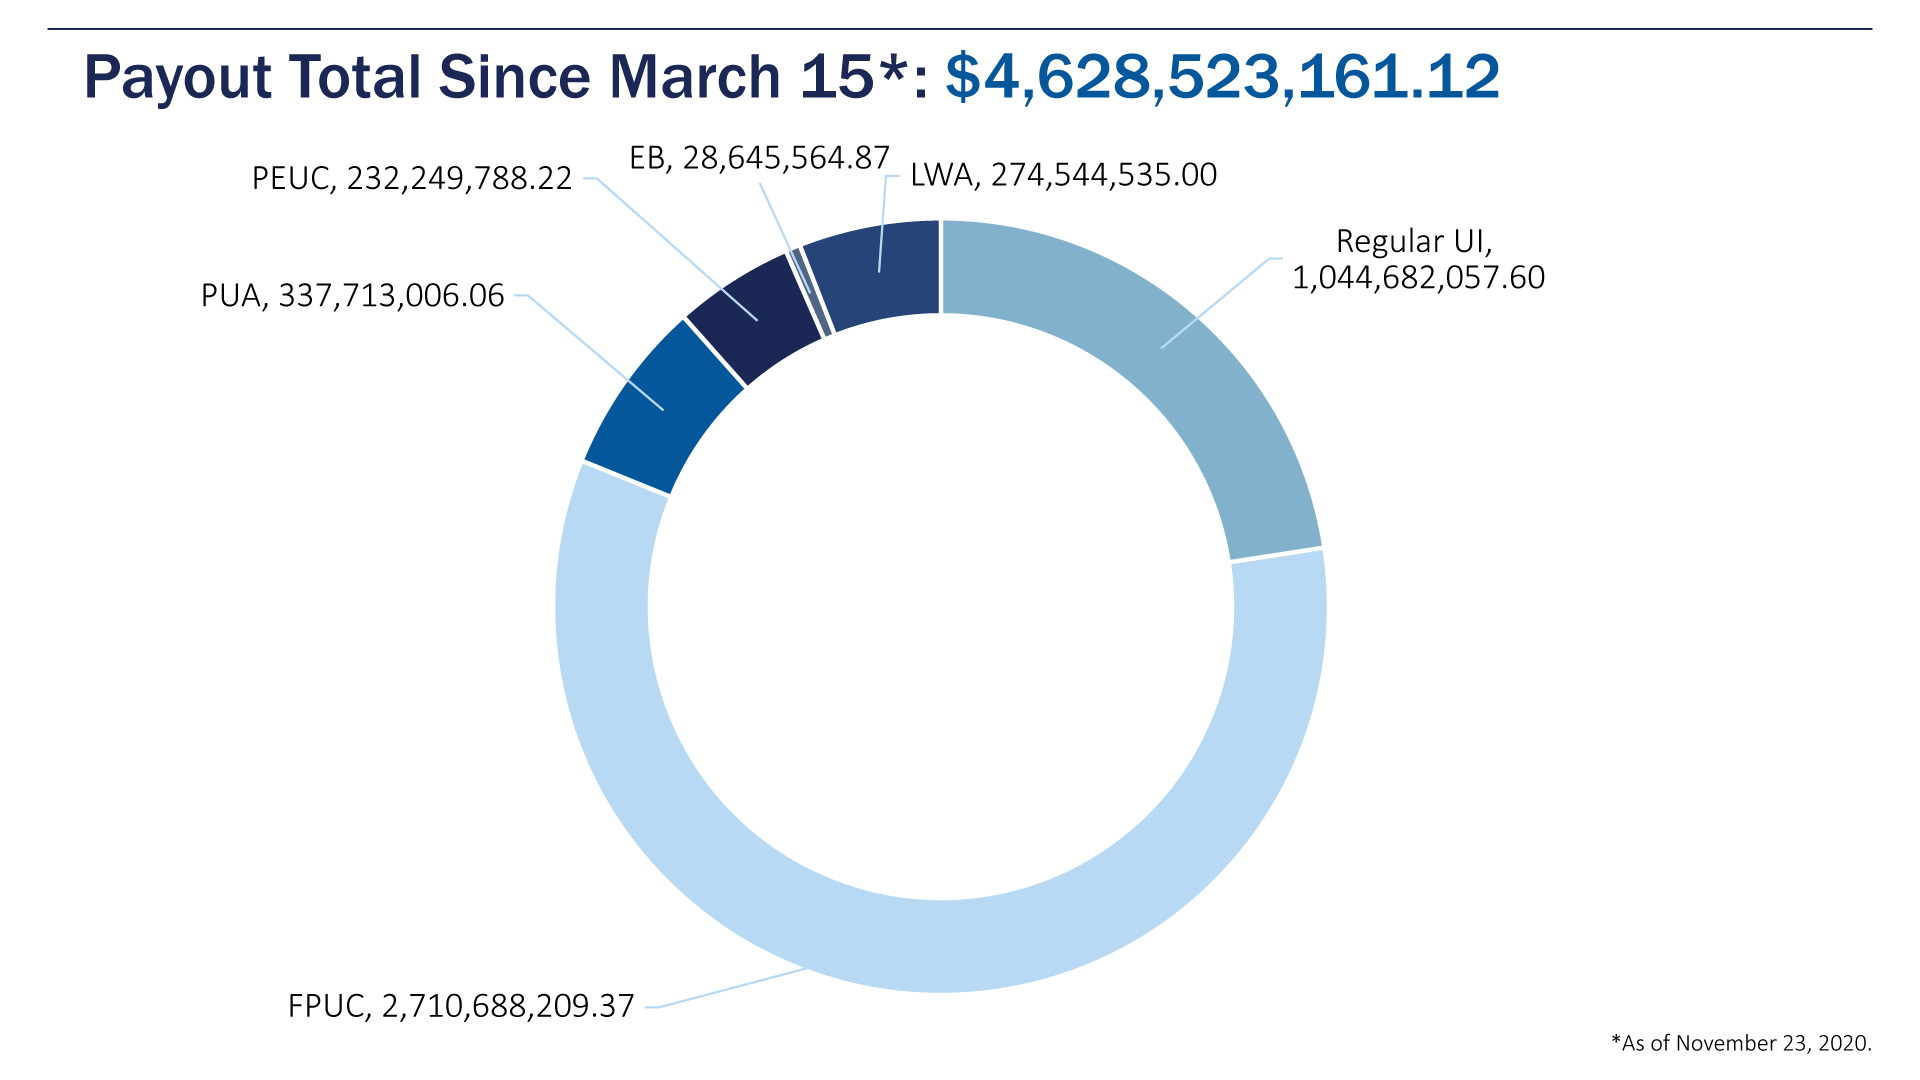 Data Dashboard_3_Financial_2_Payout Total_Since Mar 15_11-01-11-07-2020